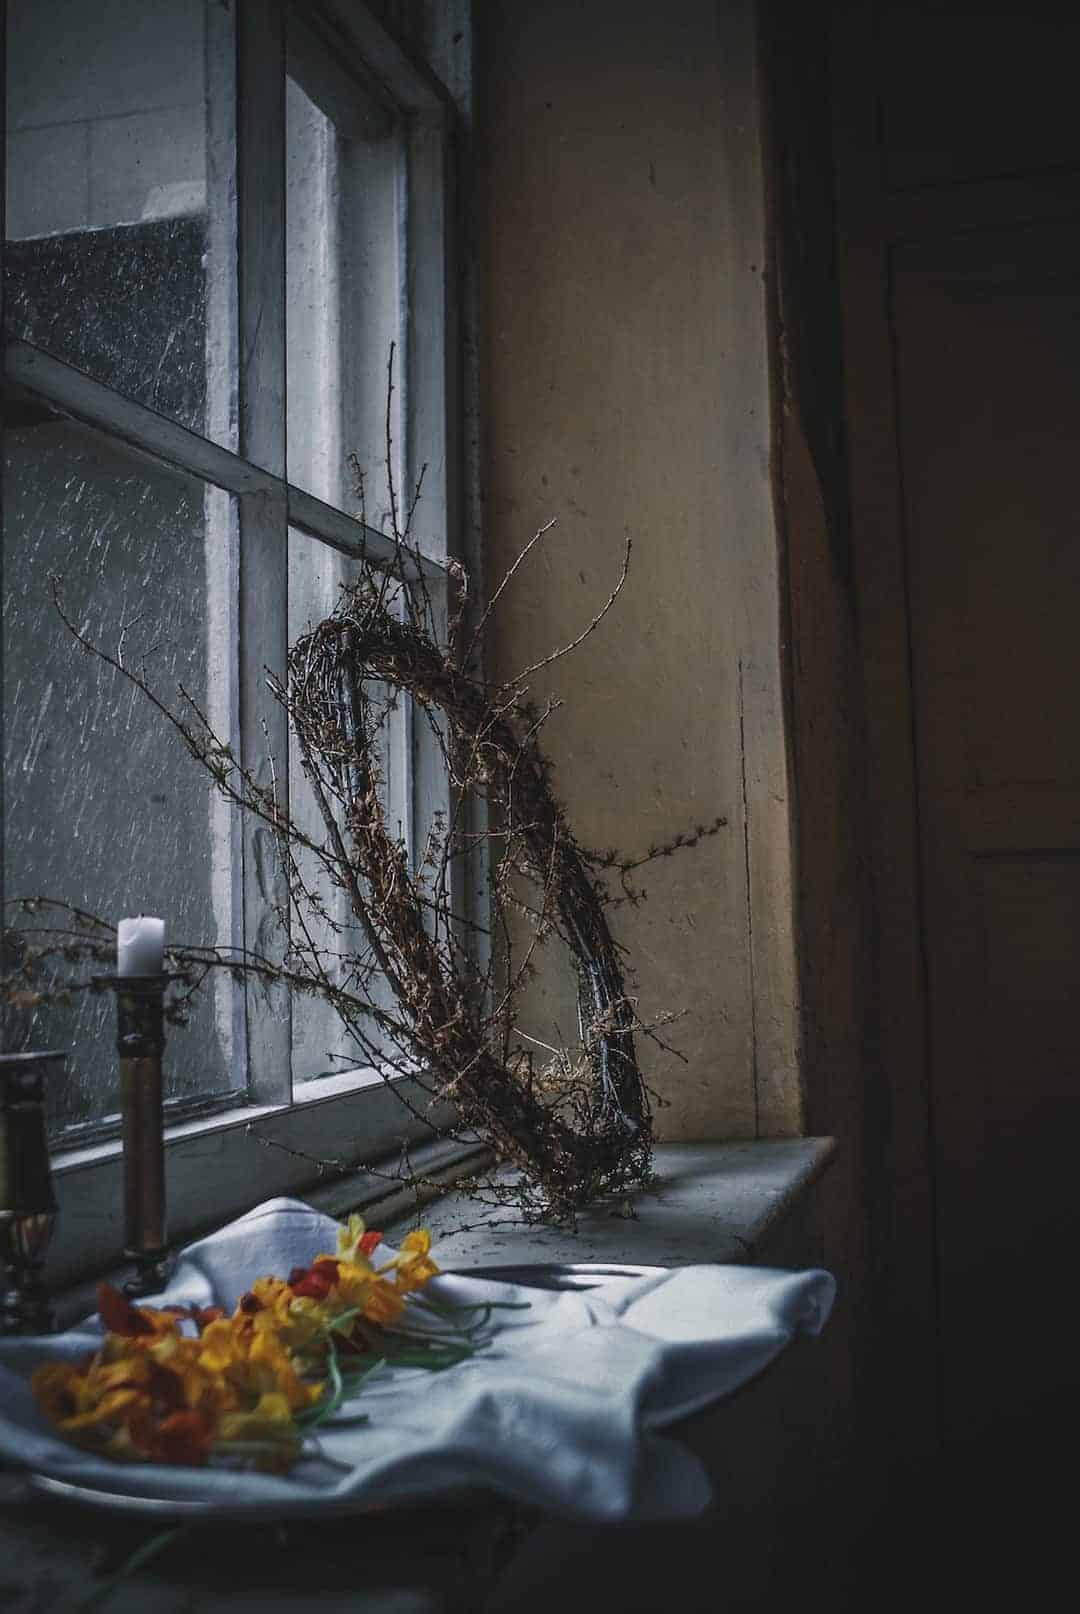 love this moody window shot with willow wreath, old candle sticks and nasturtiums at a wintry window at The Regency Townhouse in Hove with candlelight and a magical feel at the launch of Conscious Creativity by Philippa Stanton aka @5ftinf click through for a peek inside as well as more image of the workshop and the day